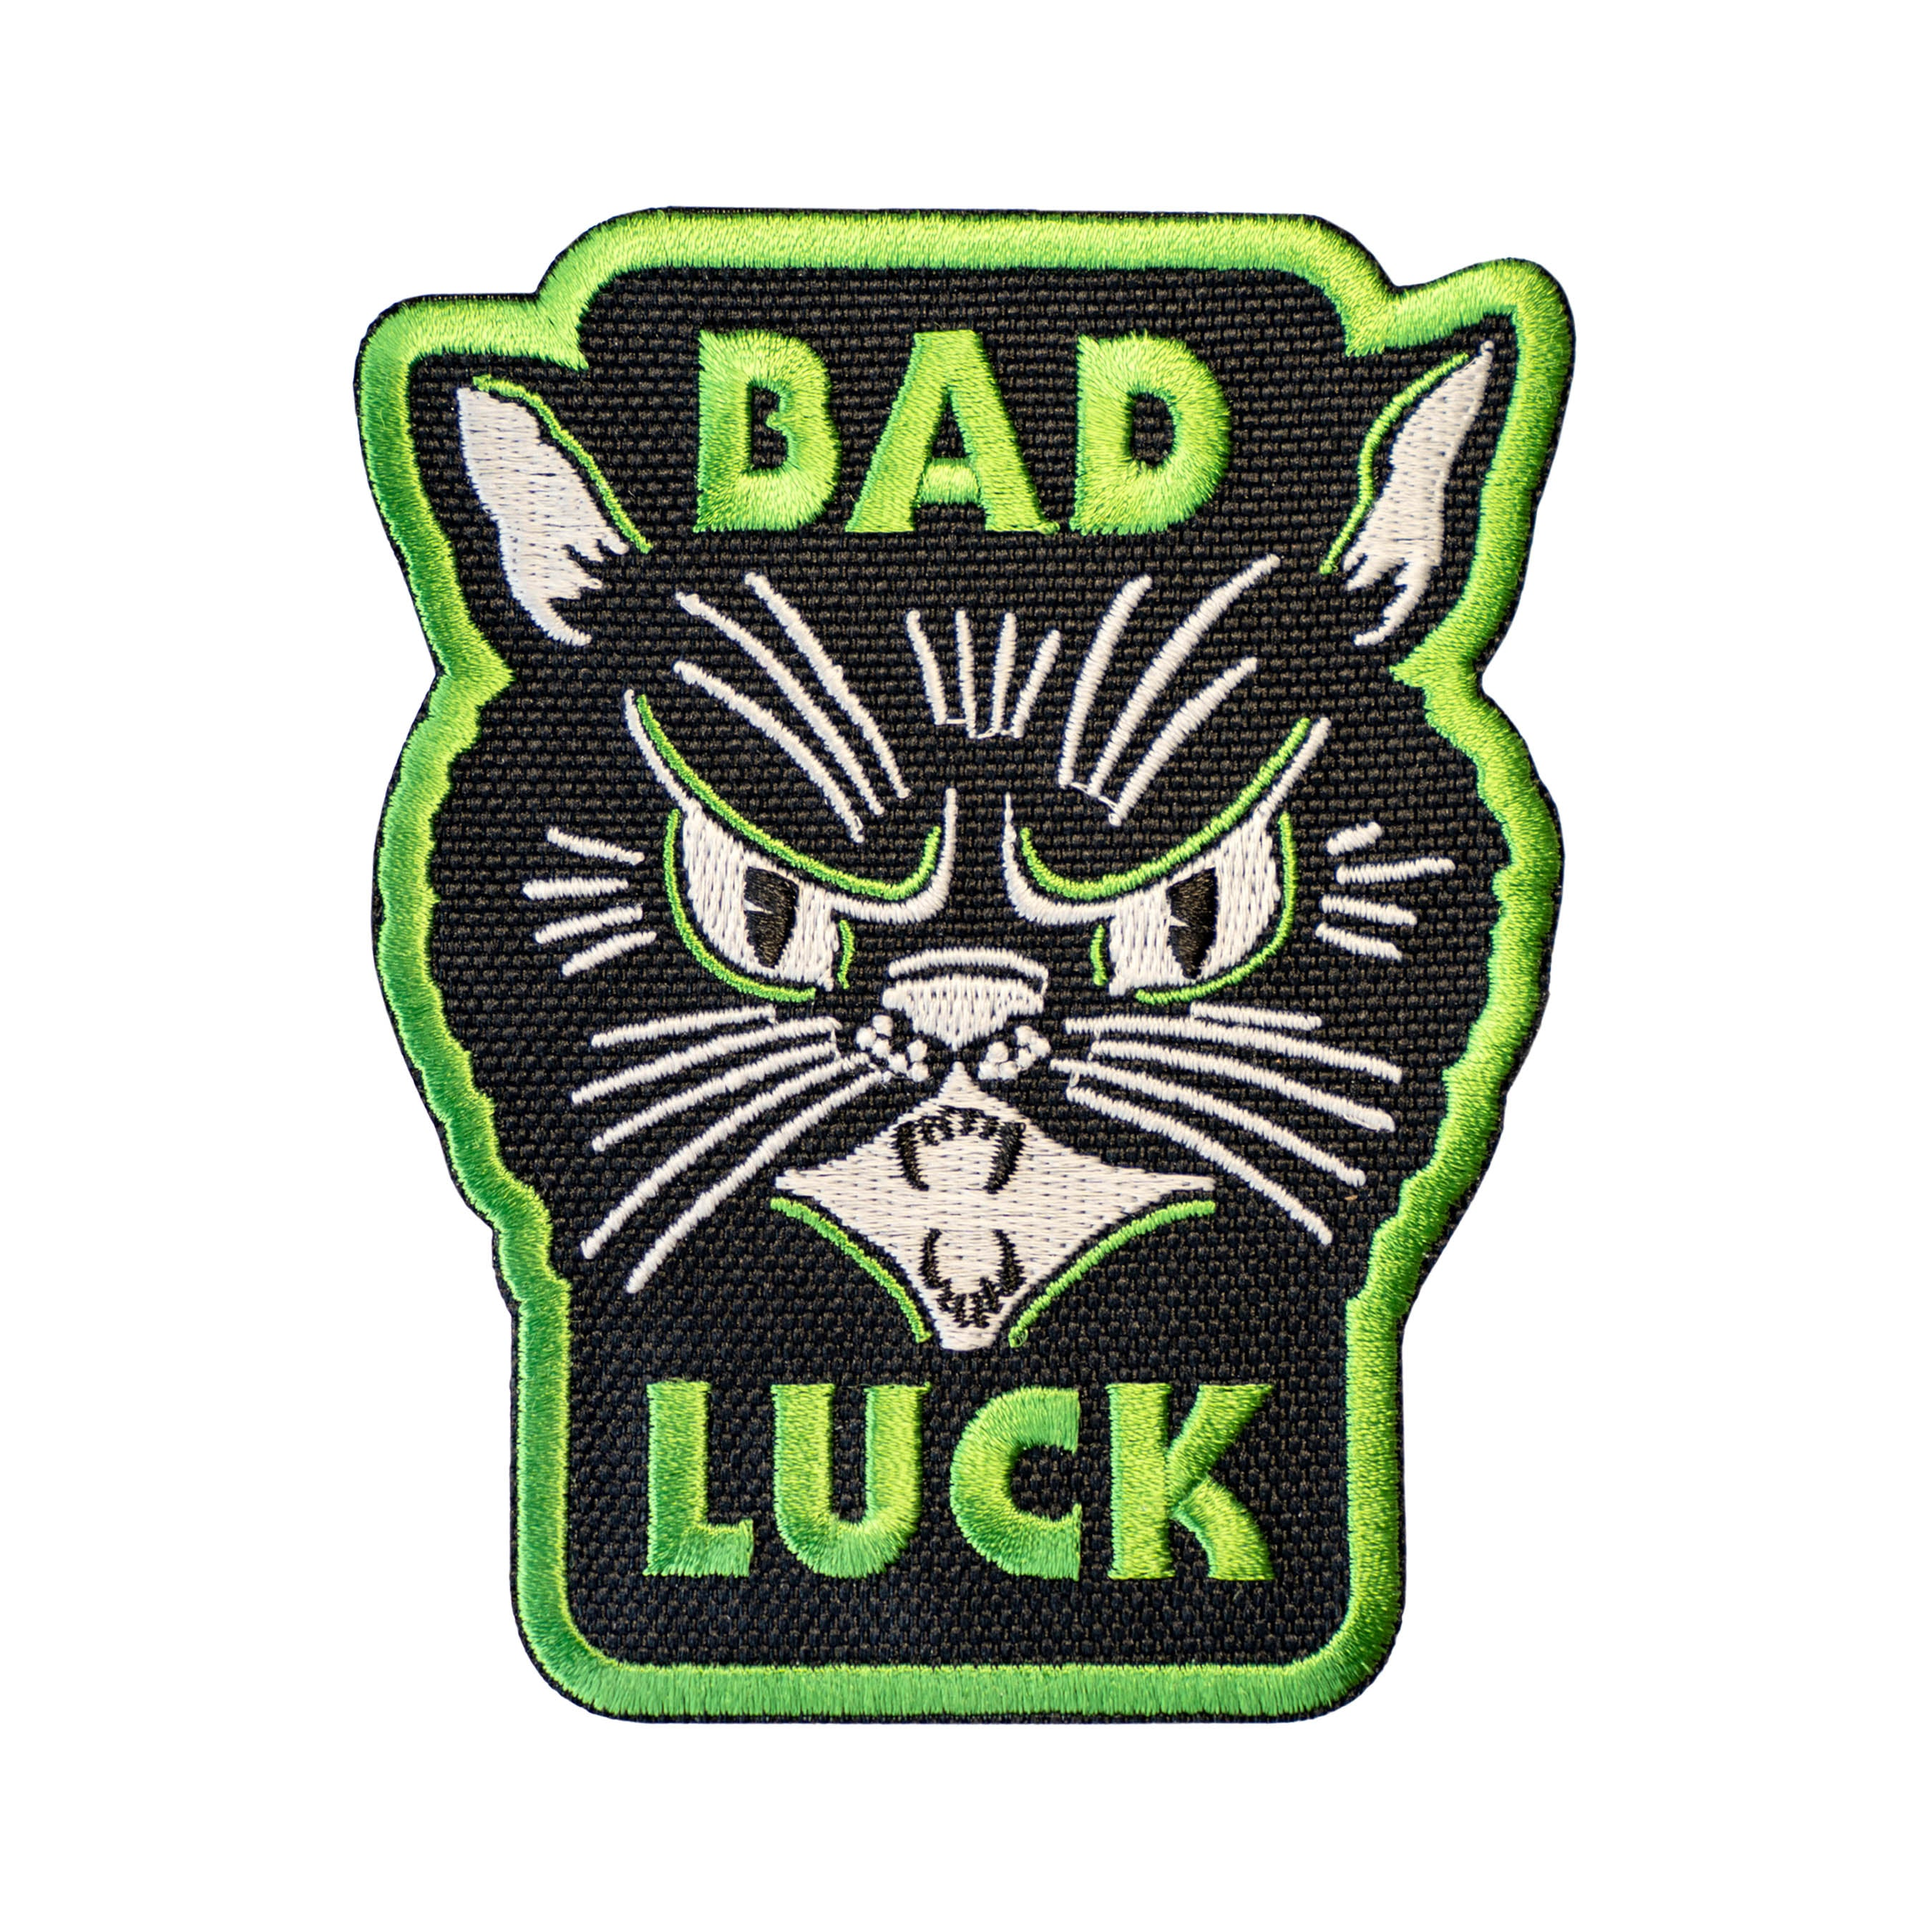 Bad Luck Patch